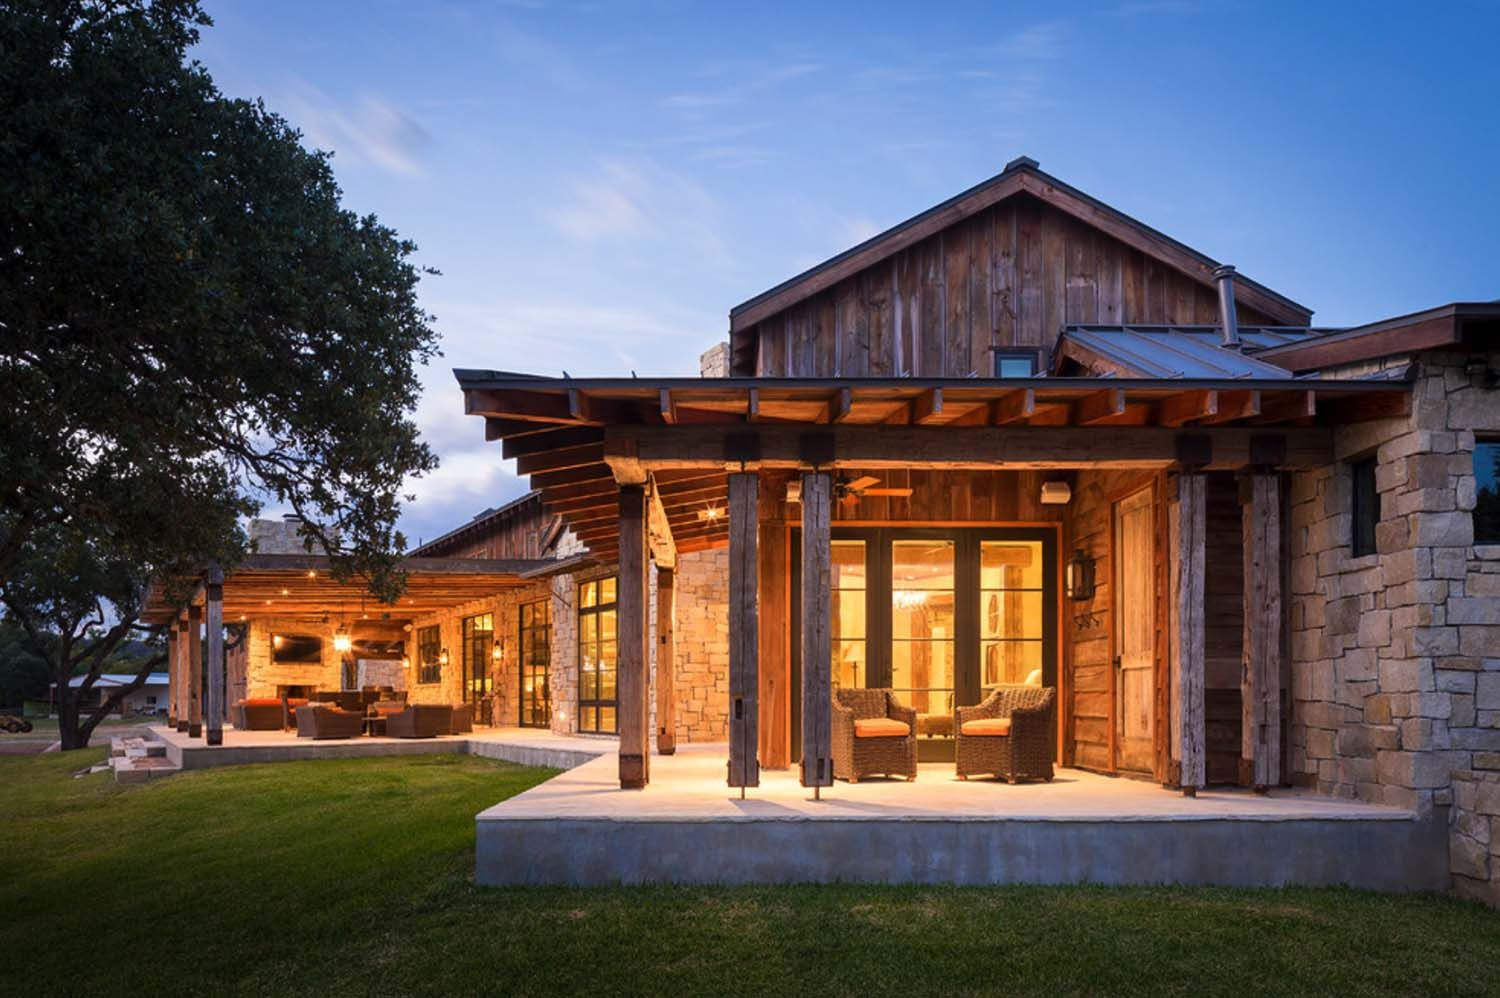 Modern rustic barn style retreat in texas hill country Country home builders in texas